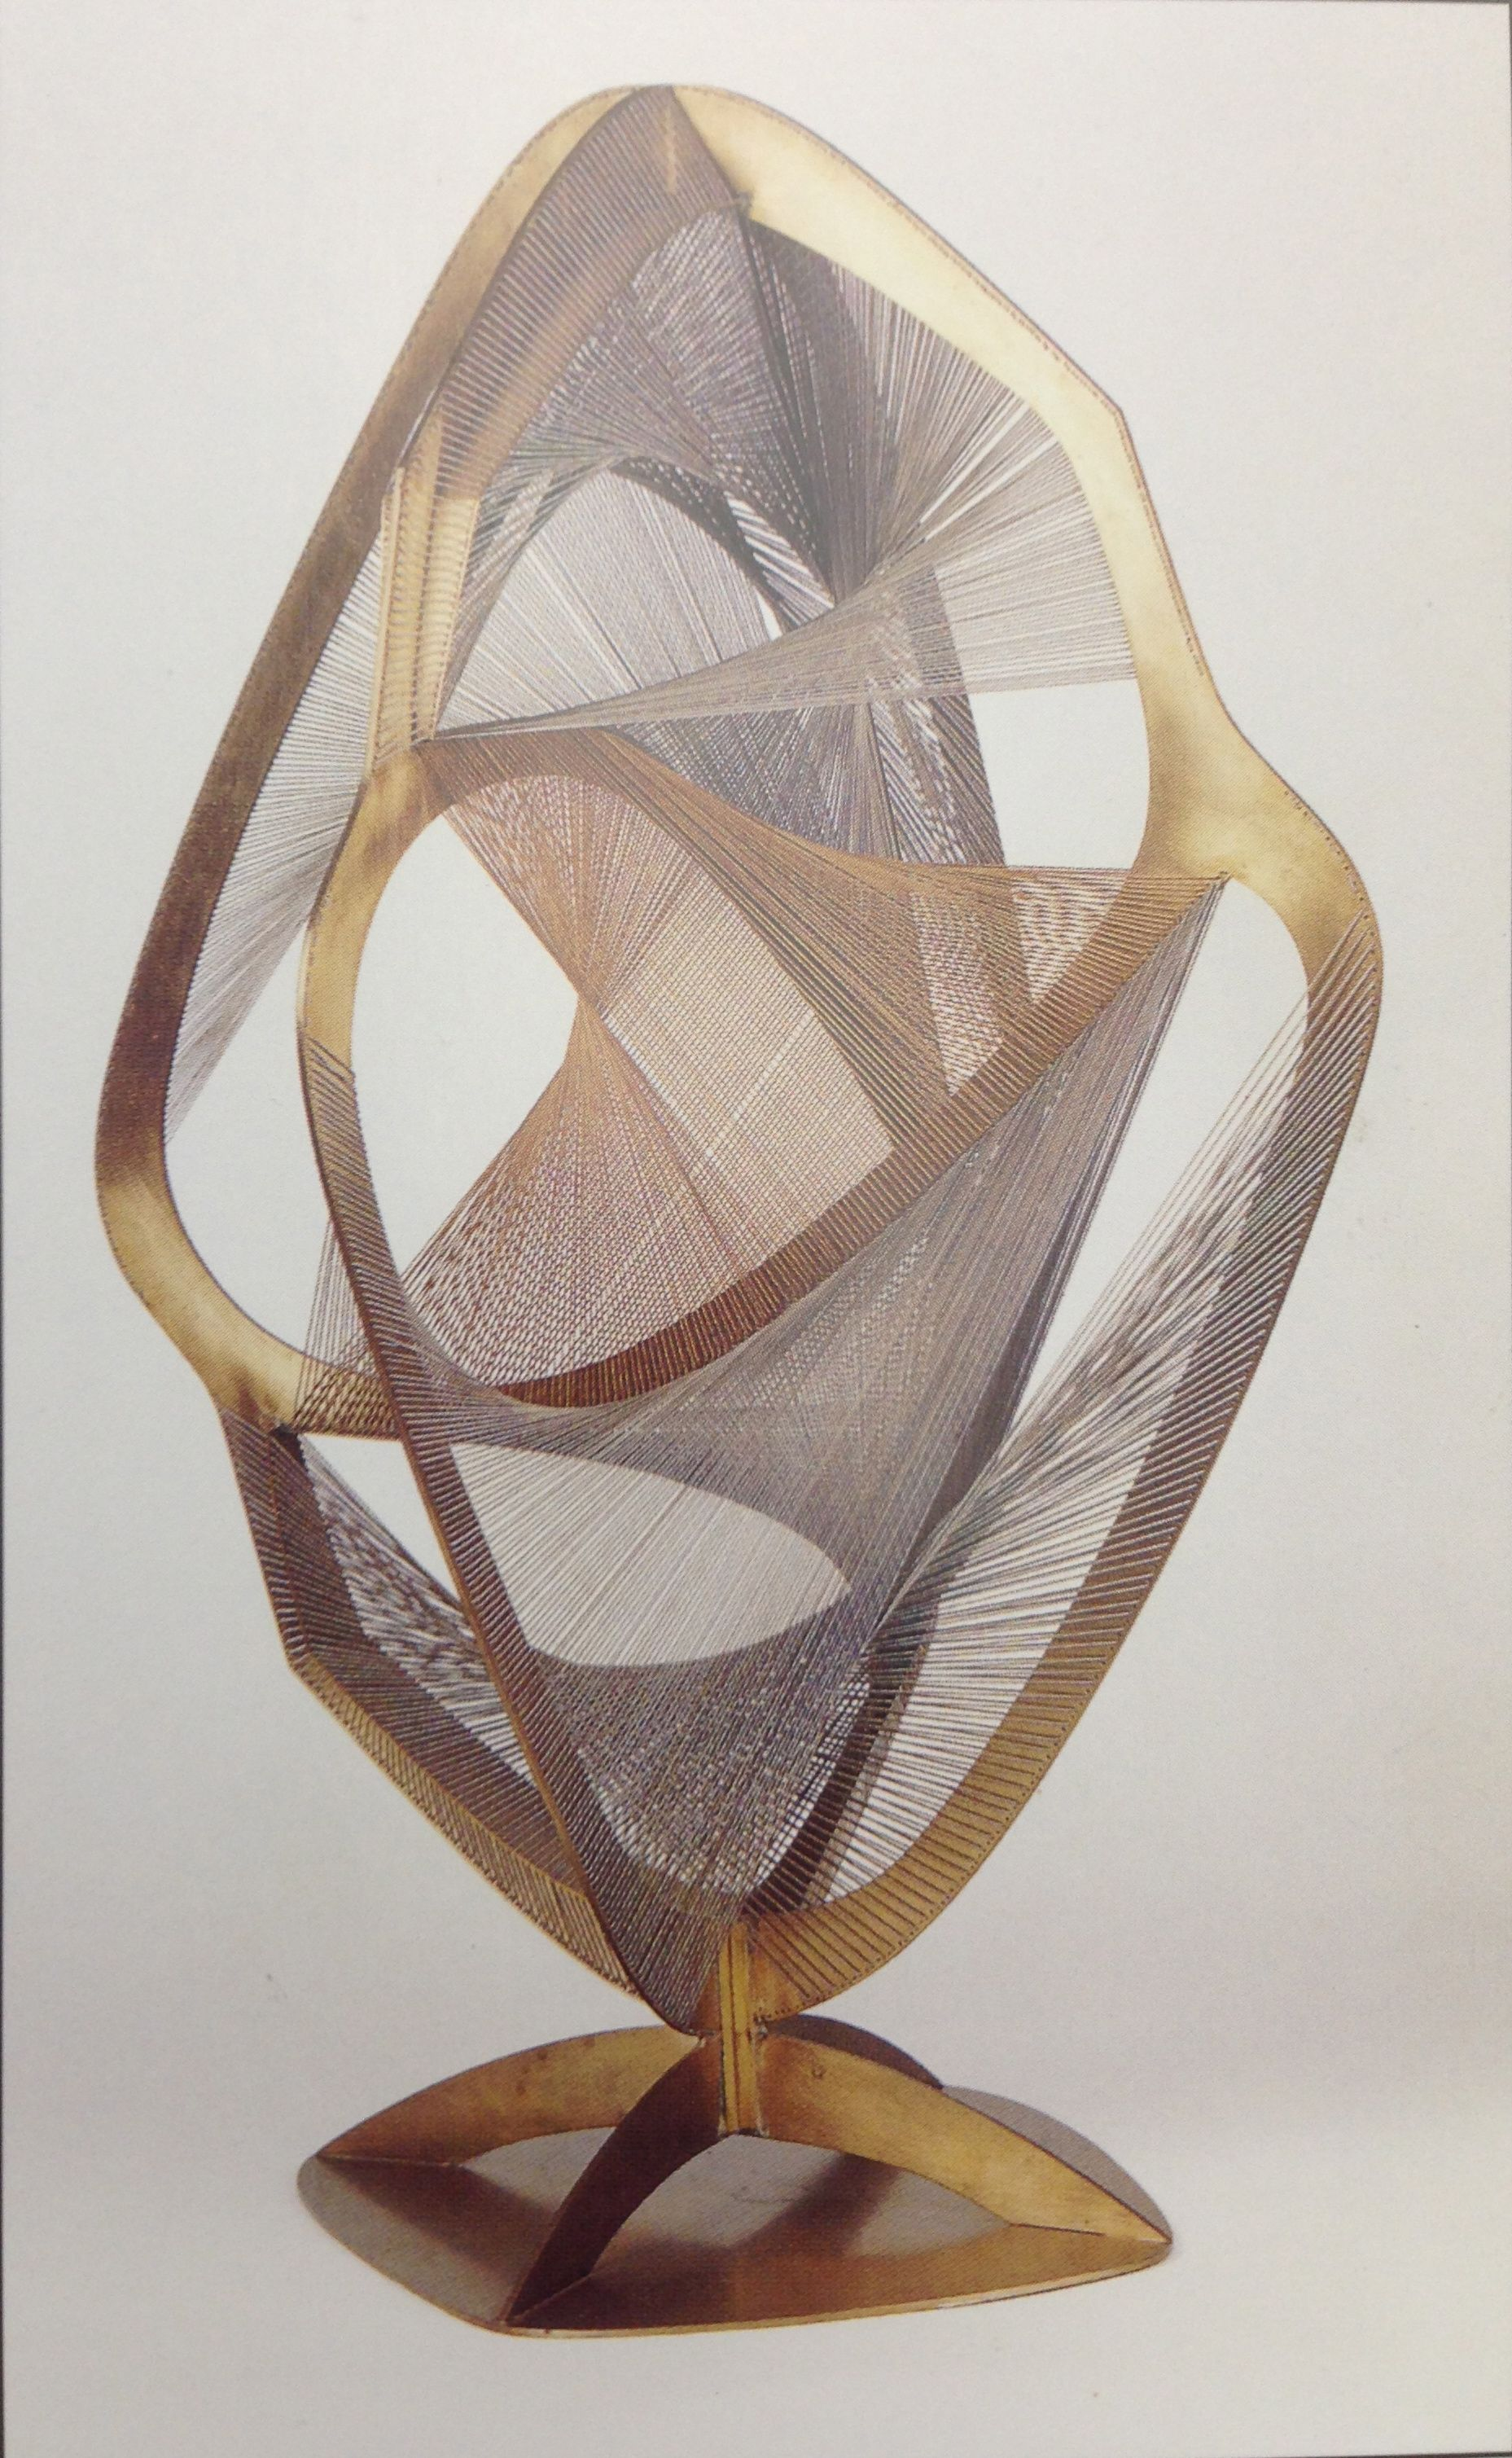 Naum Gabo, Linear Construction in Space No. 4 - Fluid ...